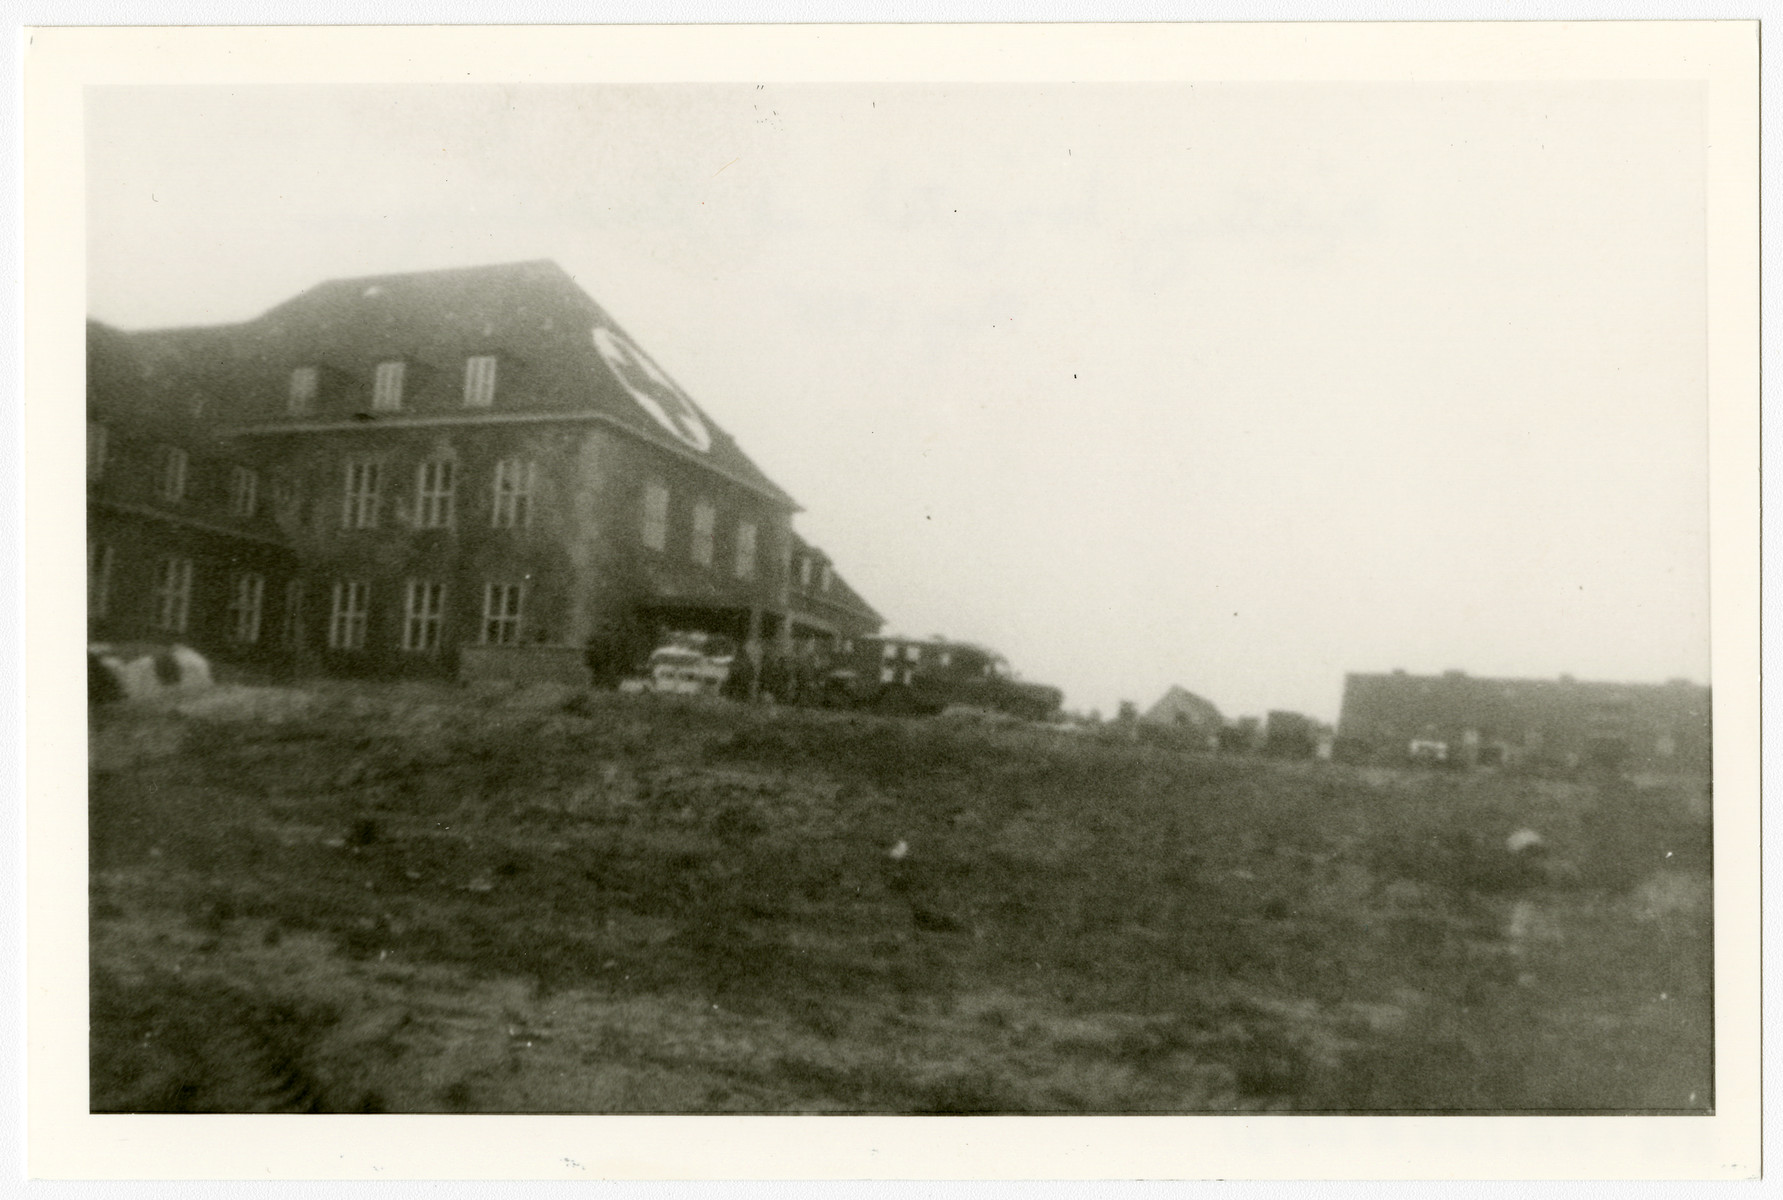 Exterior view of the military hospital at Gardelegen, Germany.